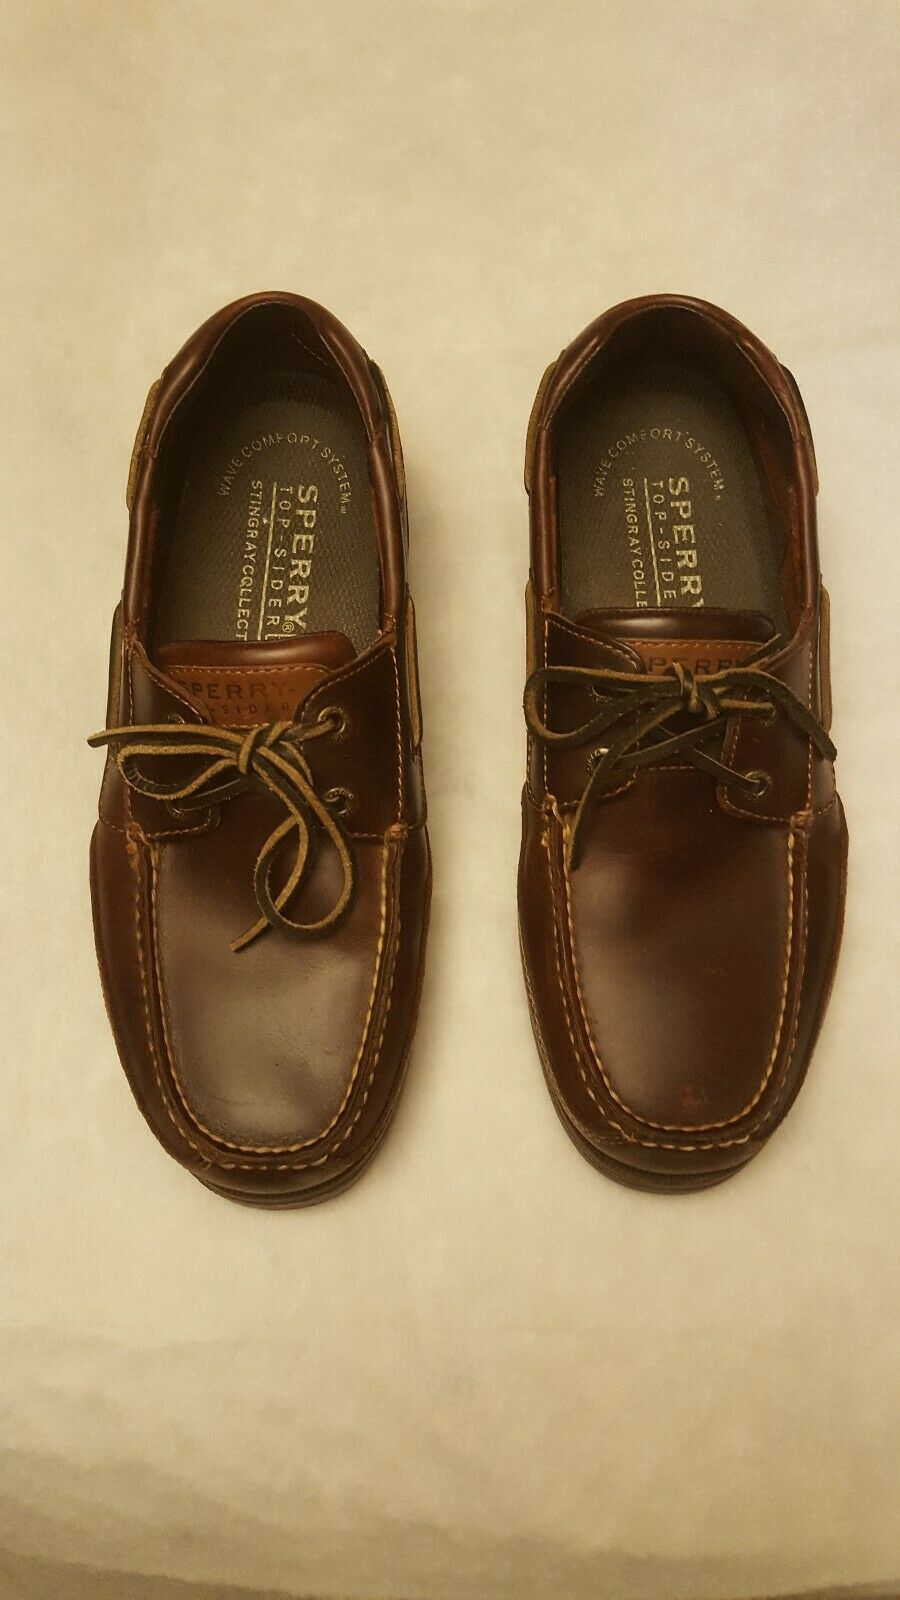 Sperry top sider mens size 10m brown leather boat shoes 2 eye non marking sole